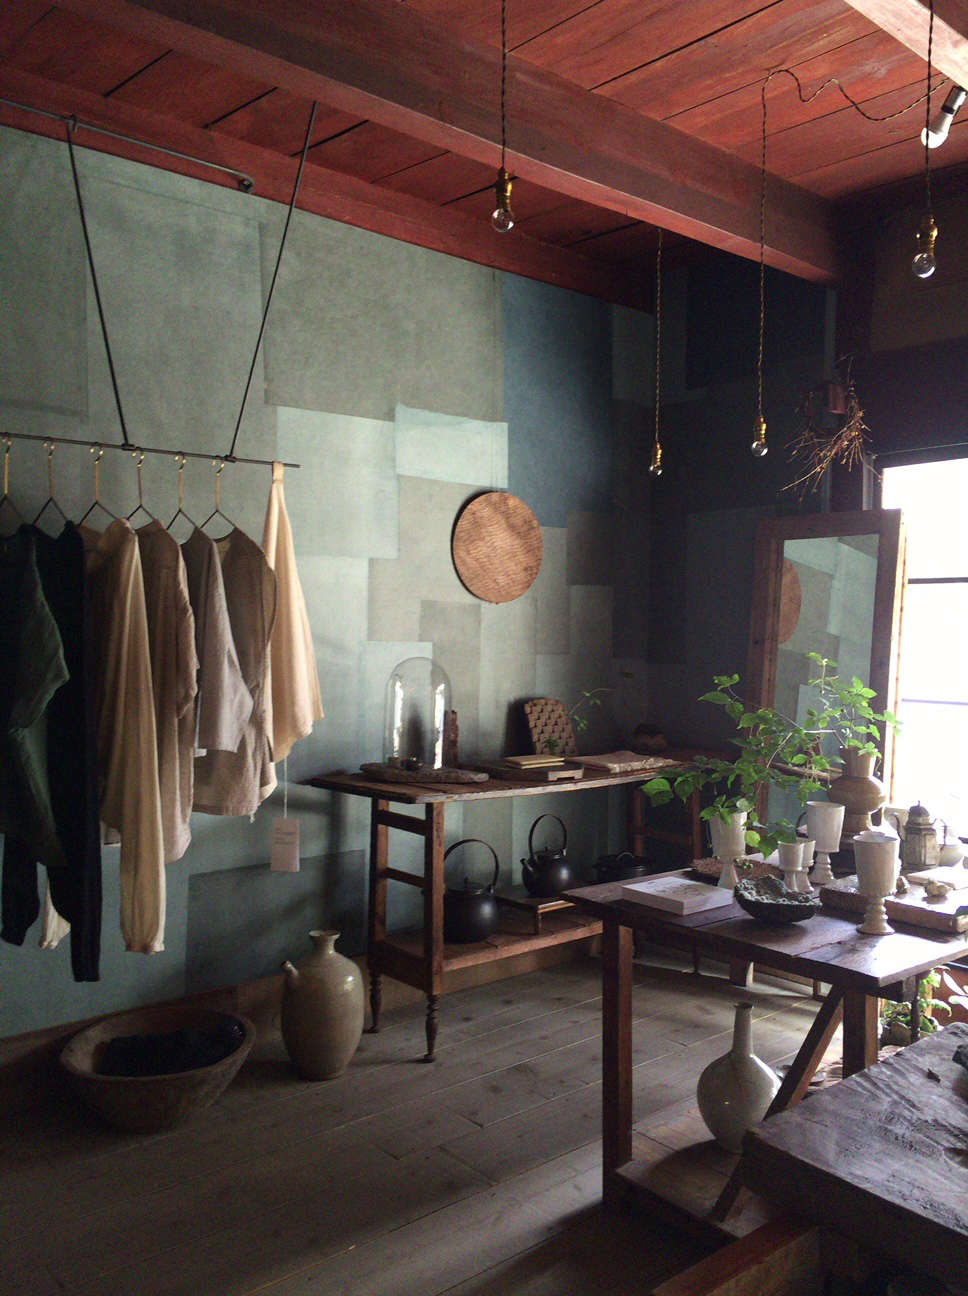 stardust, a boutique and cafe in kyoto. the walls are patterned with paper appl 9